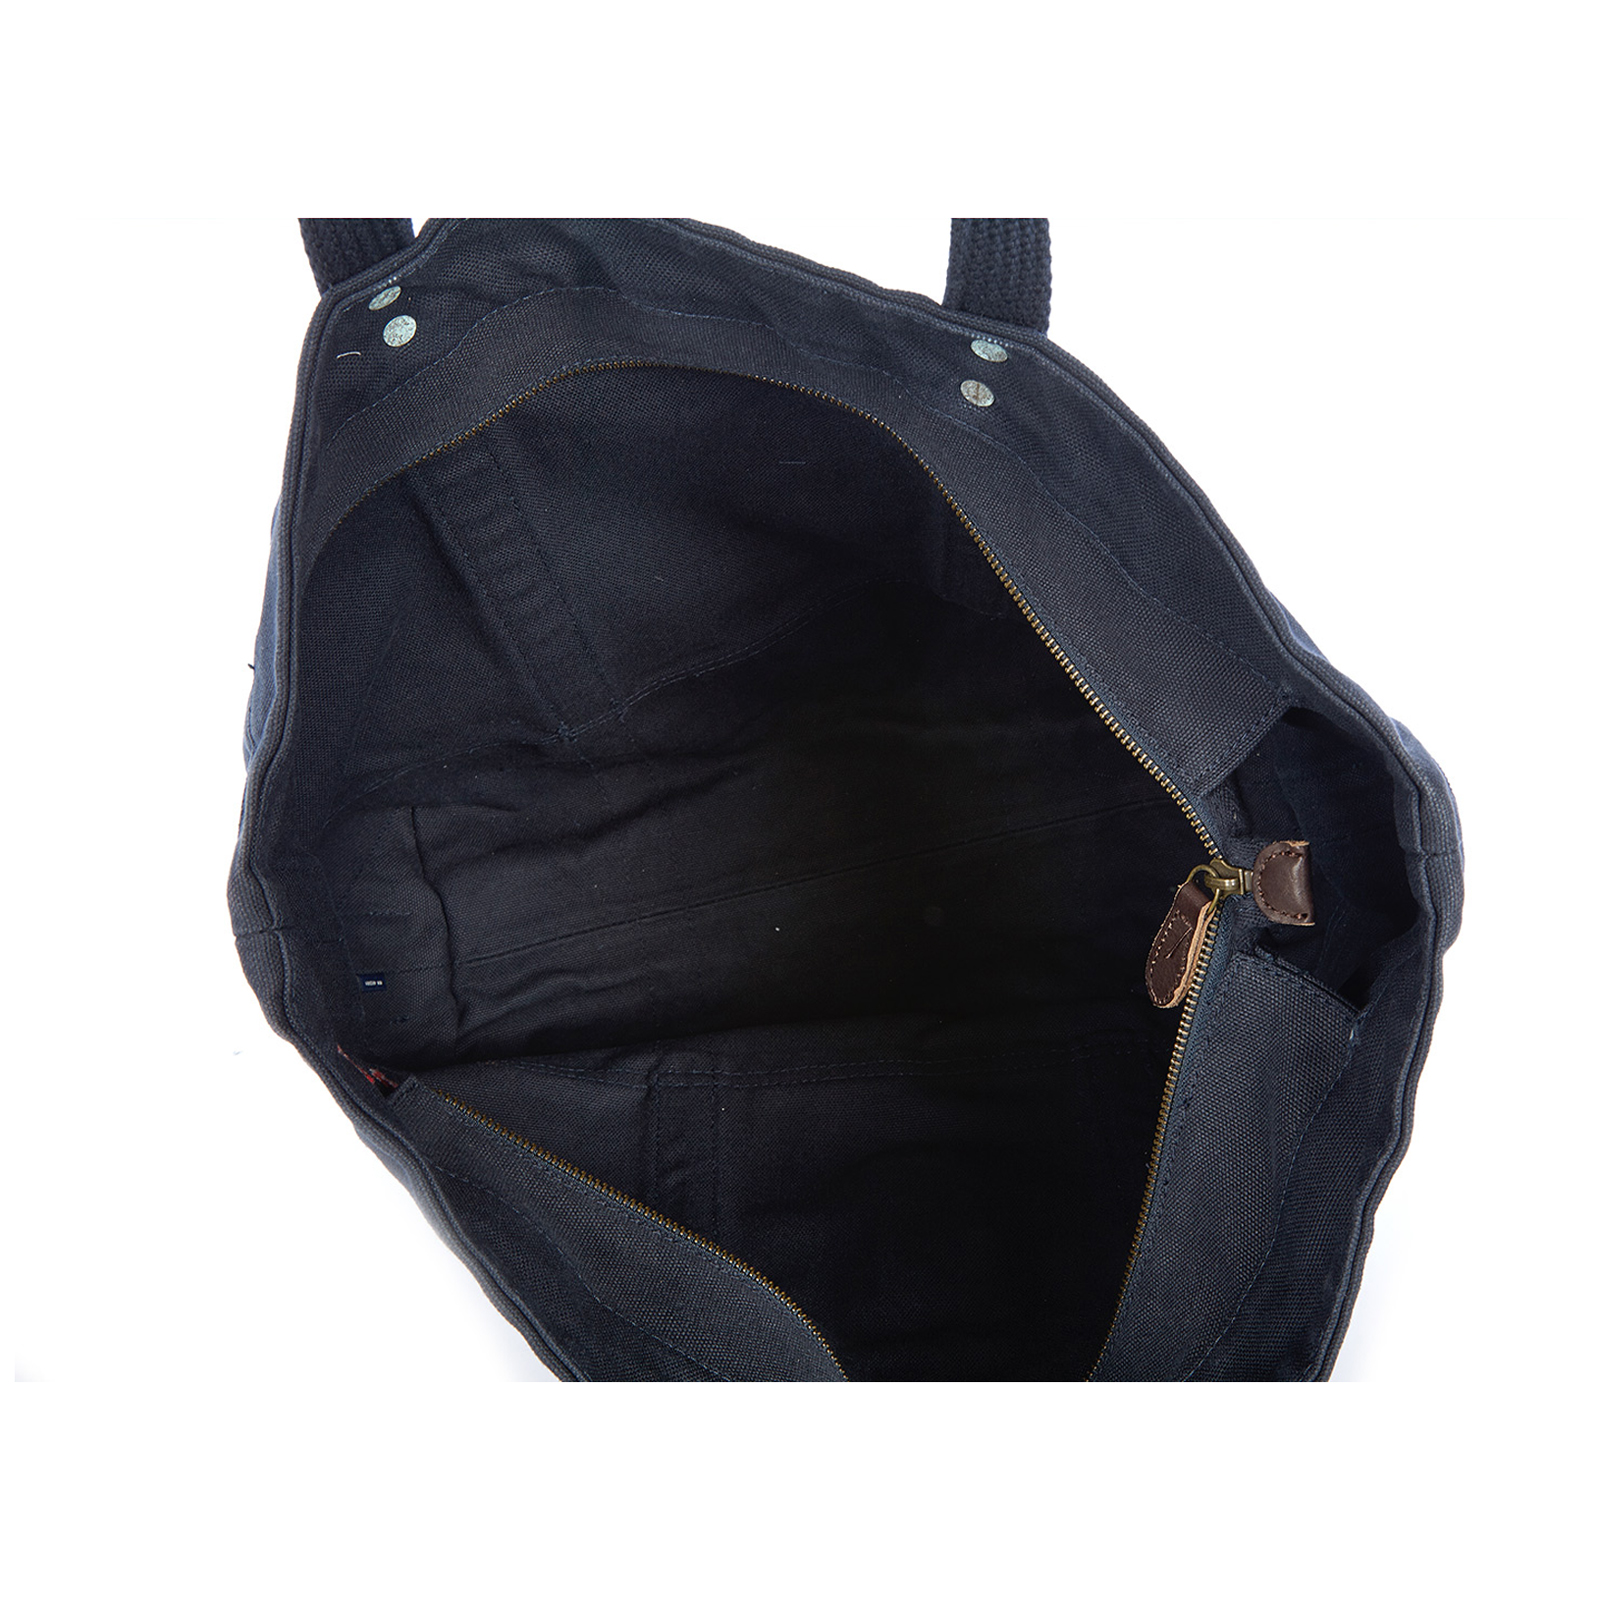 Sac à main homme shopping tote  canvas aviator